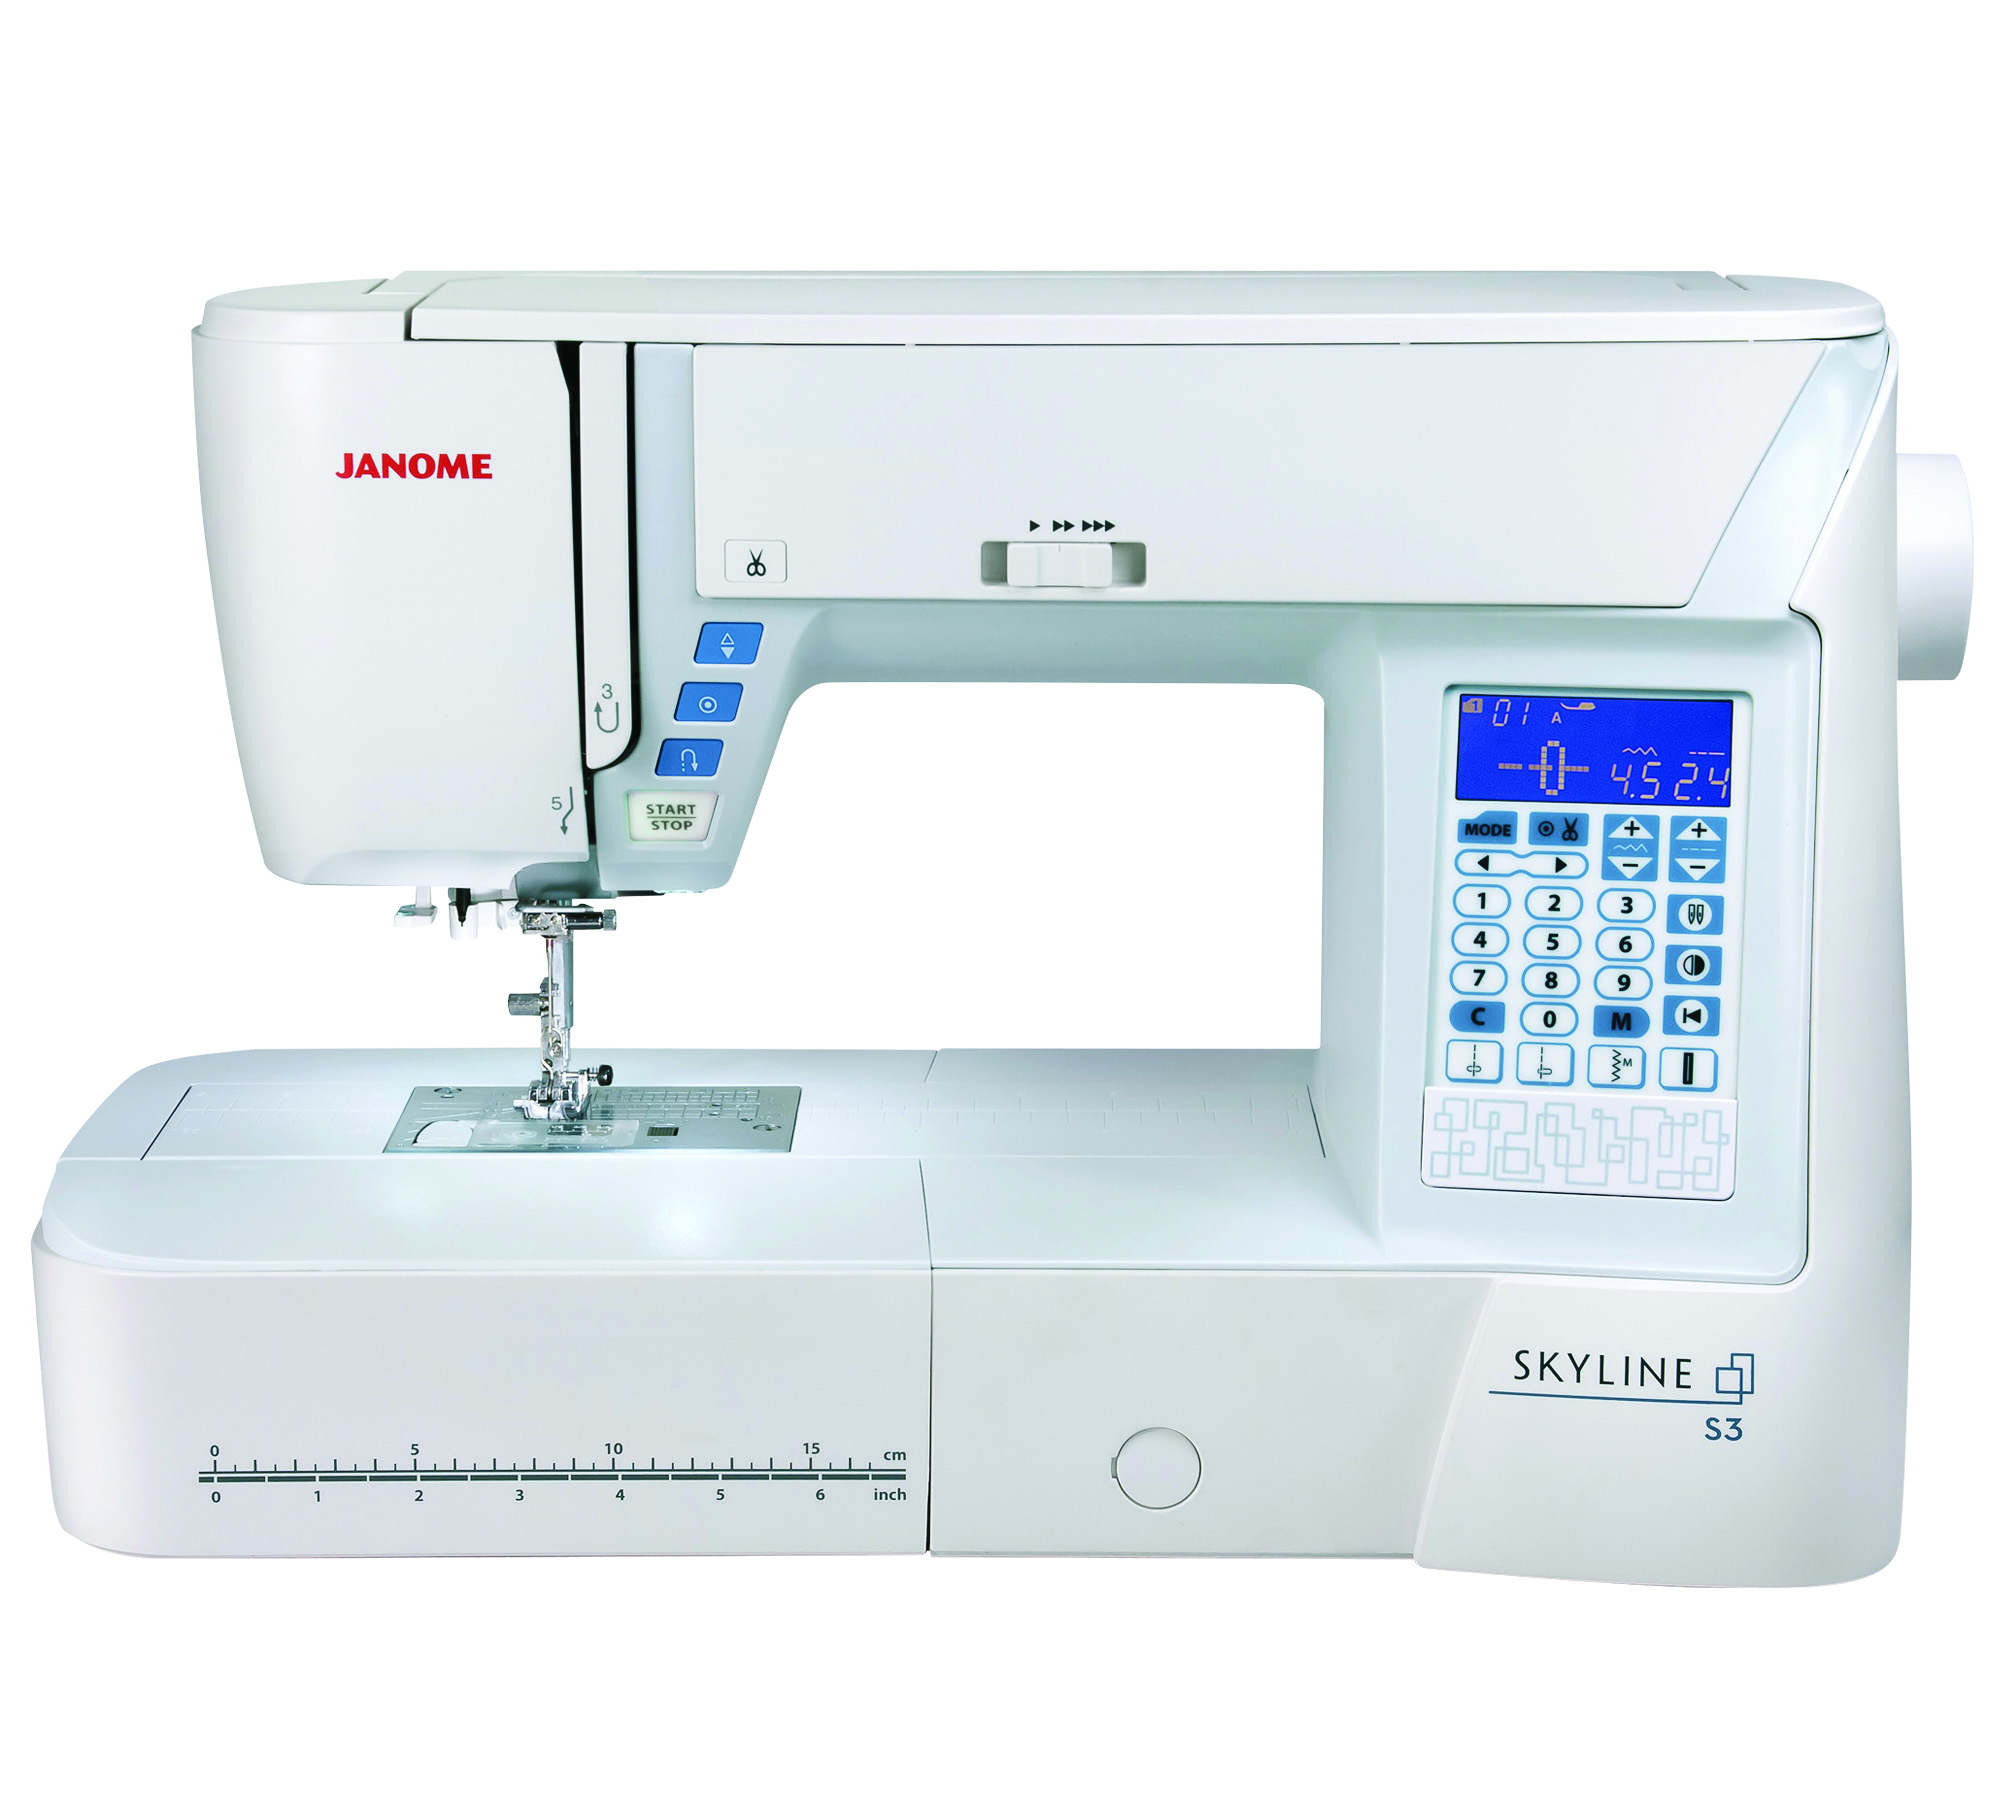 featured quilting image pictures machine front model products janome quilt